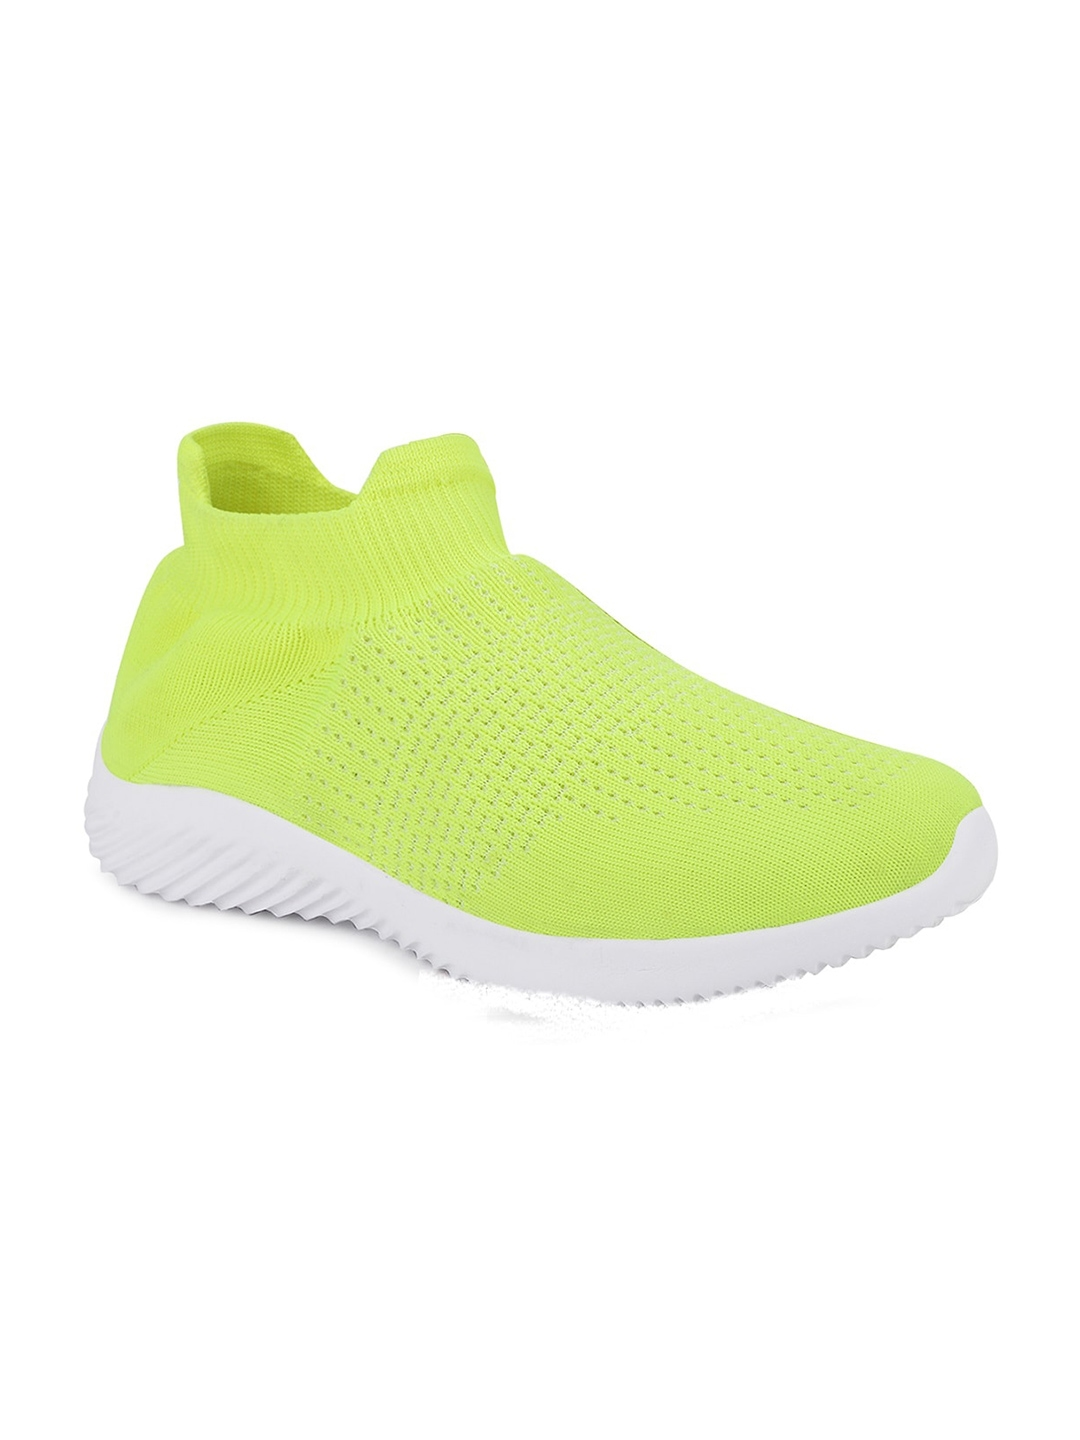 FAST TRAX Men Fluorescent Green Woven Design Oxfords Casual Shoes